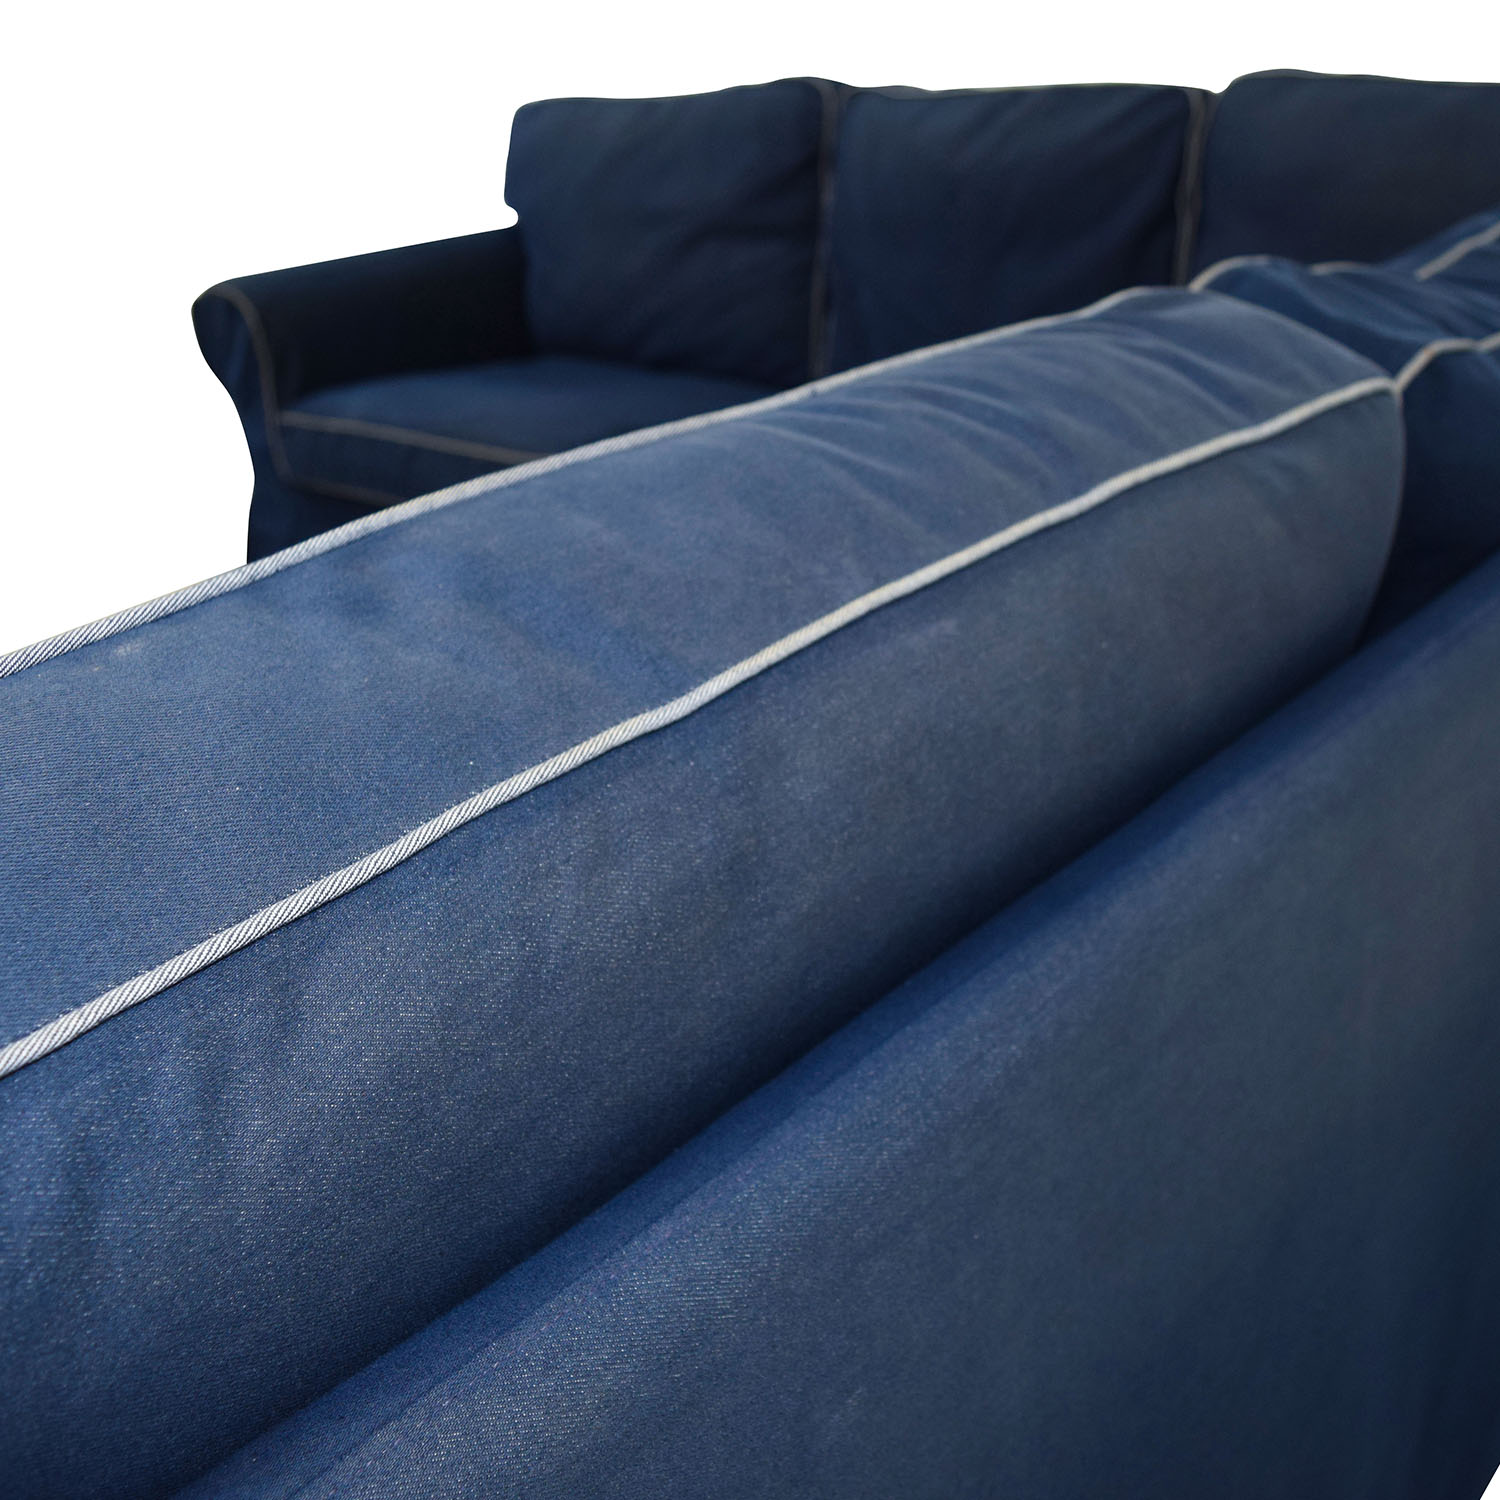 43 Off Ikea Ikea Ektorp Navy Blue Skirted Sectional Sofas